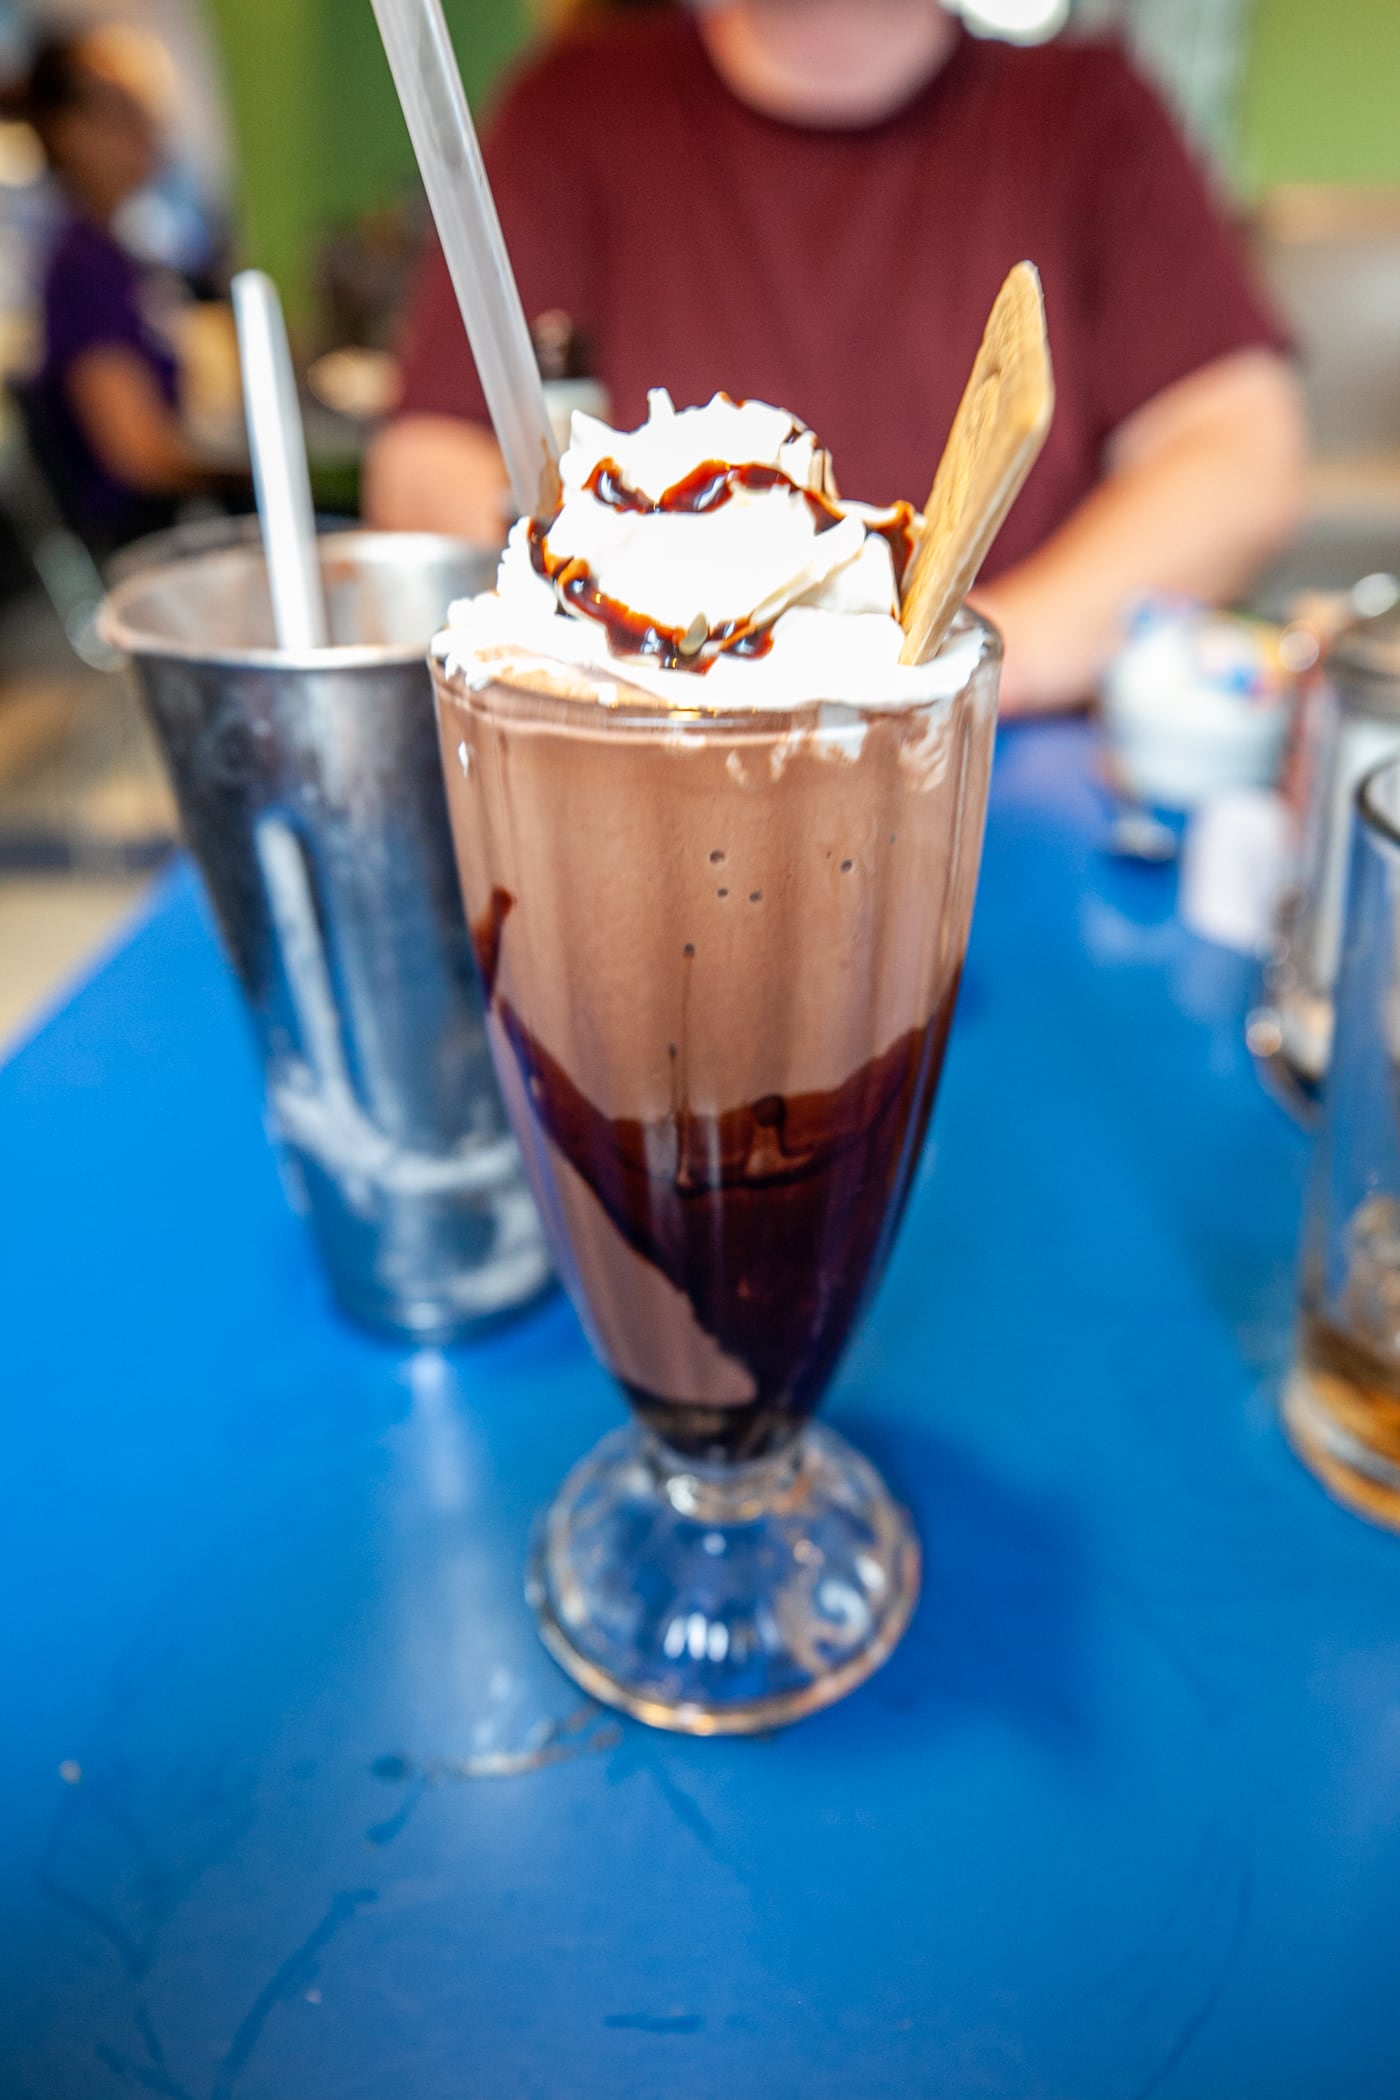 Double chocolate milkshake at Monty's Blue Plate Diner in Madison, Wisconsin.